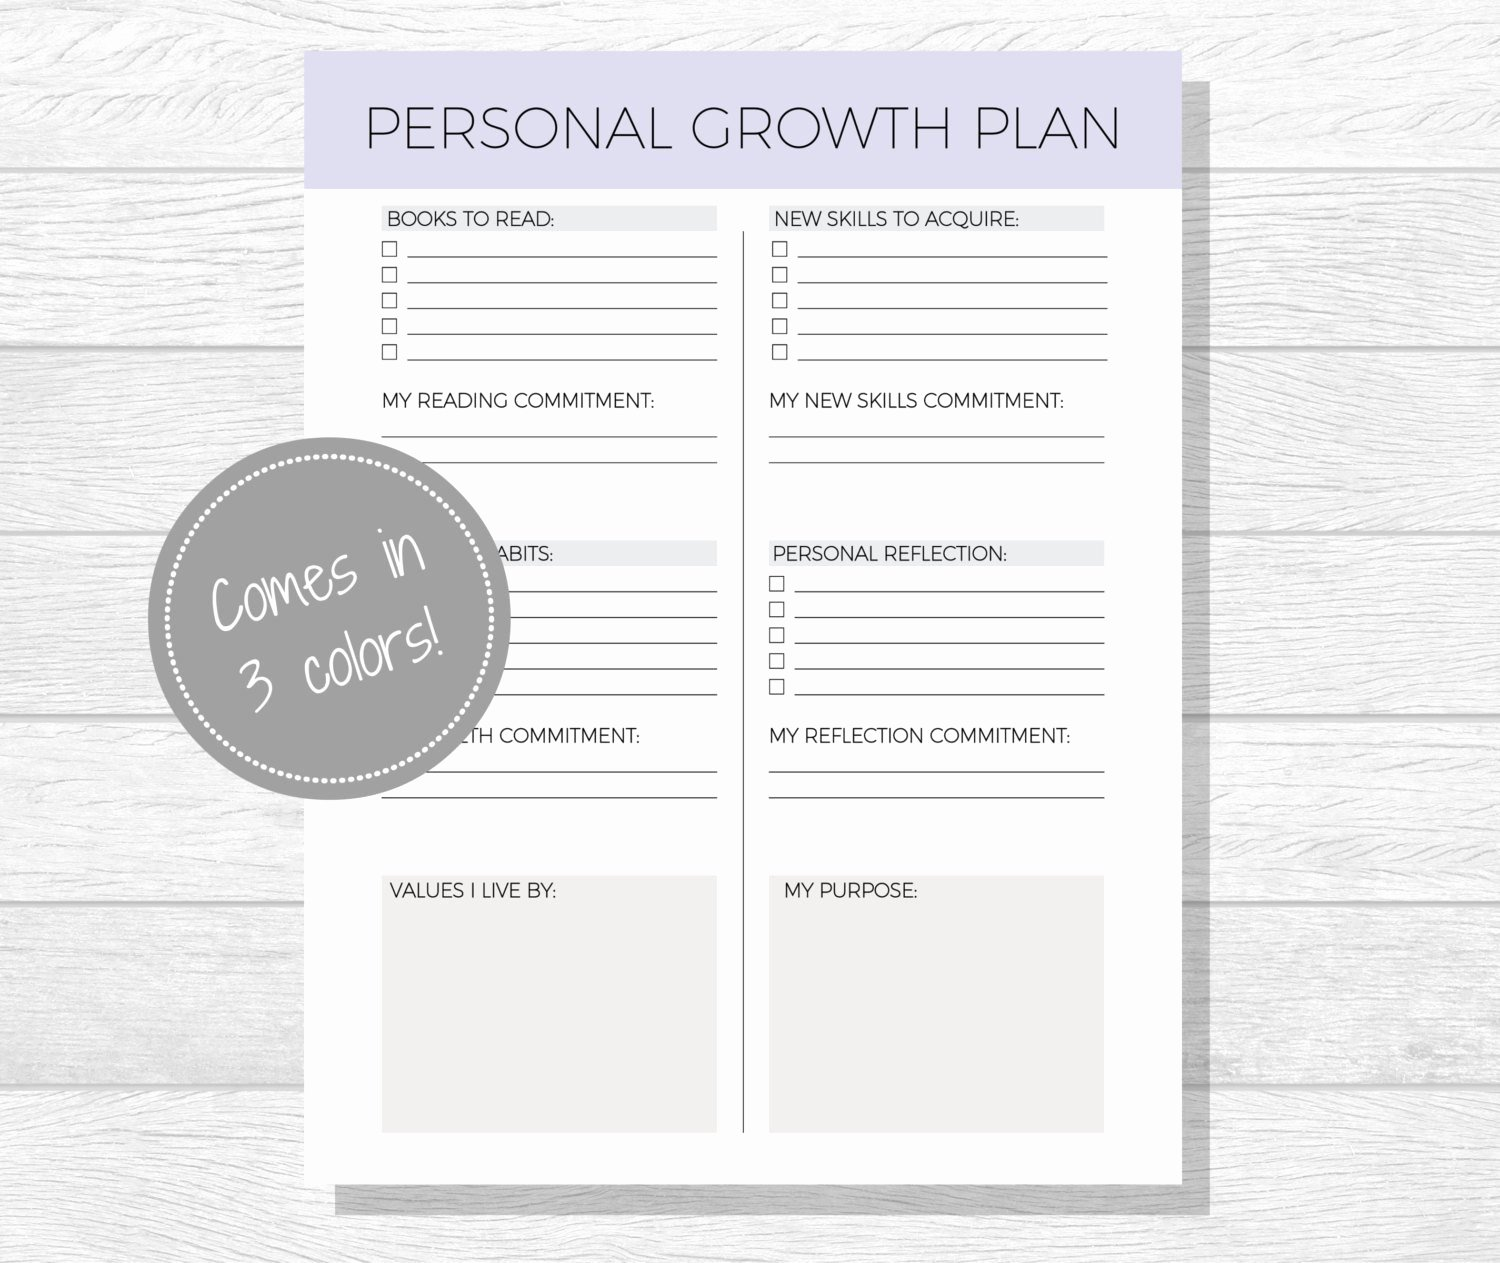 Personal Growth Plan Template Best Of Personal Growth Plan Printable Personal Development Goal